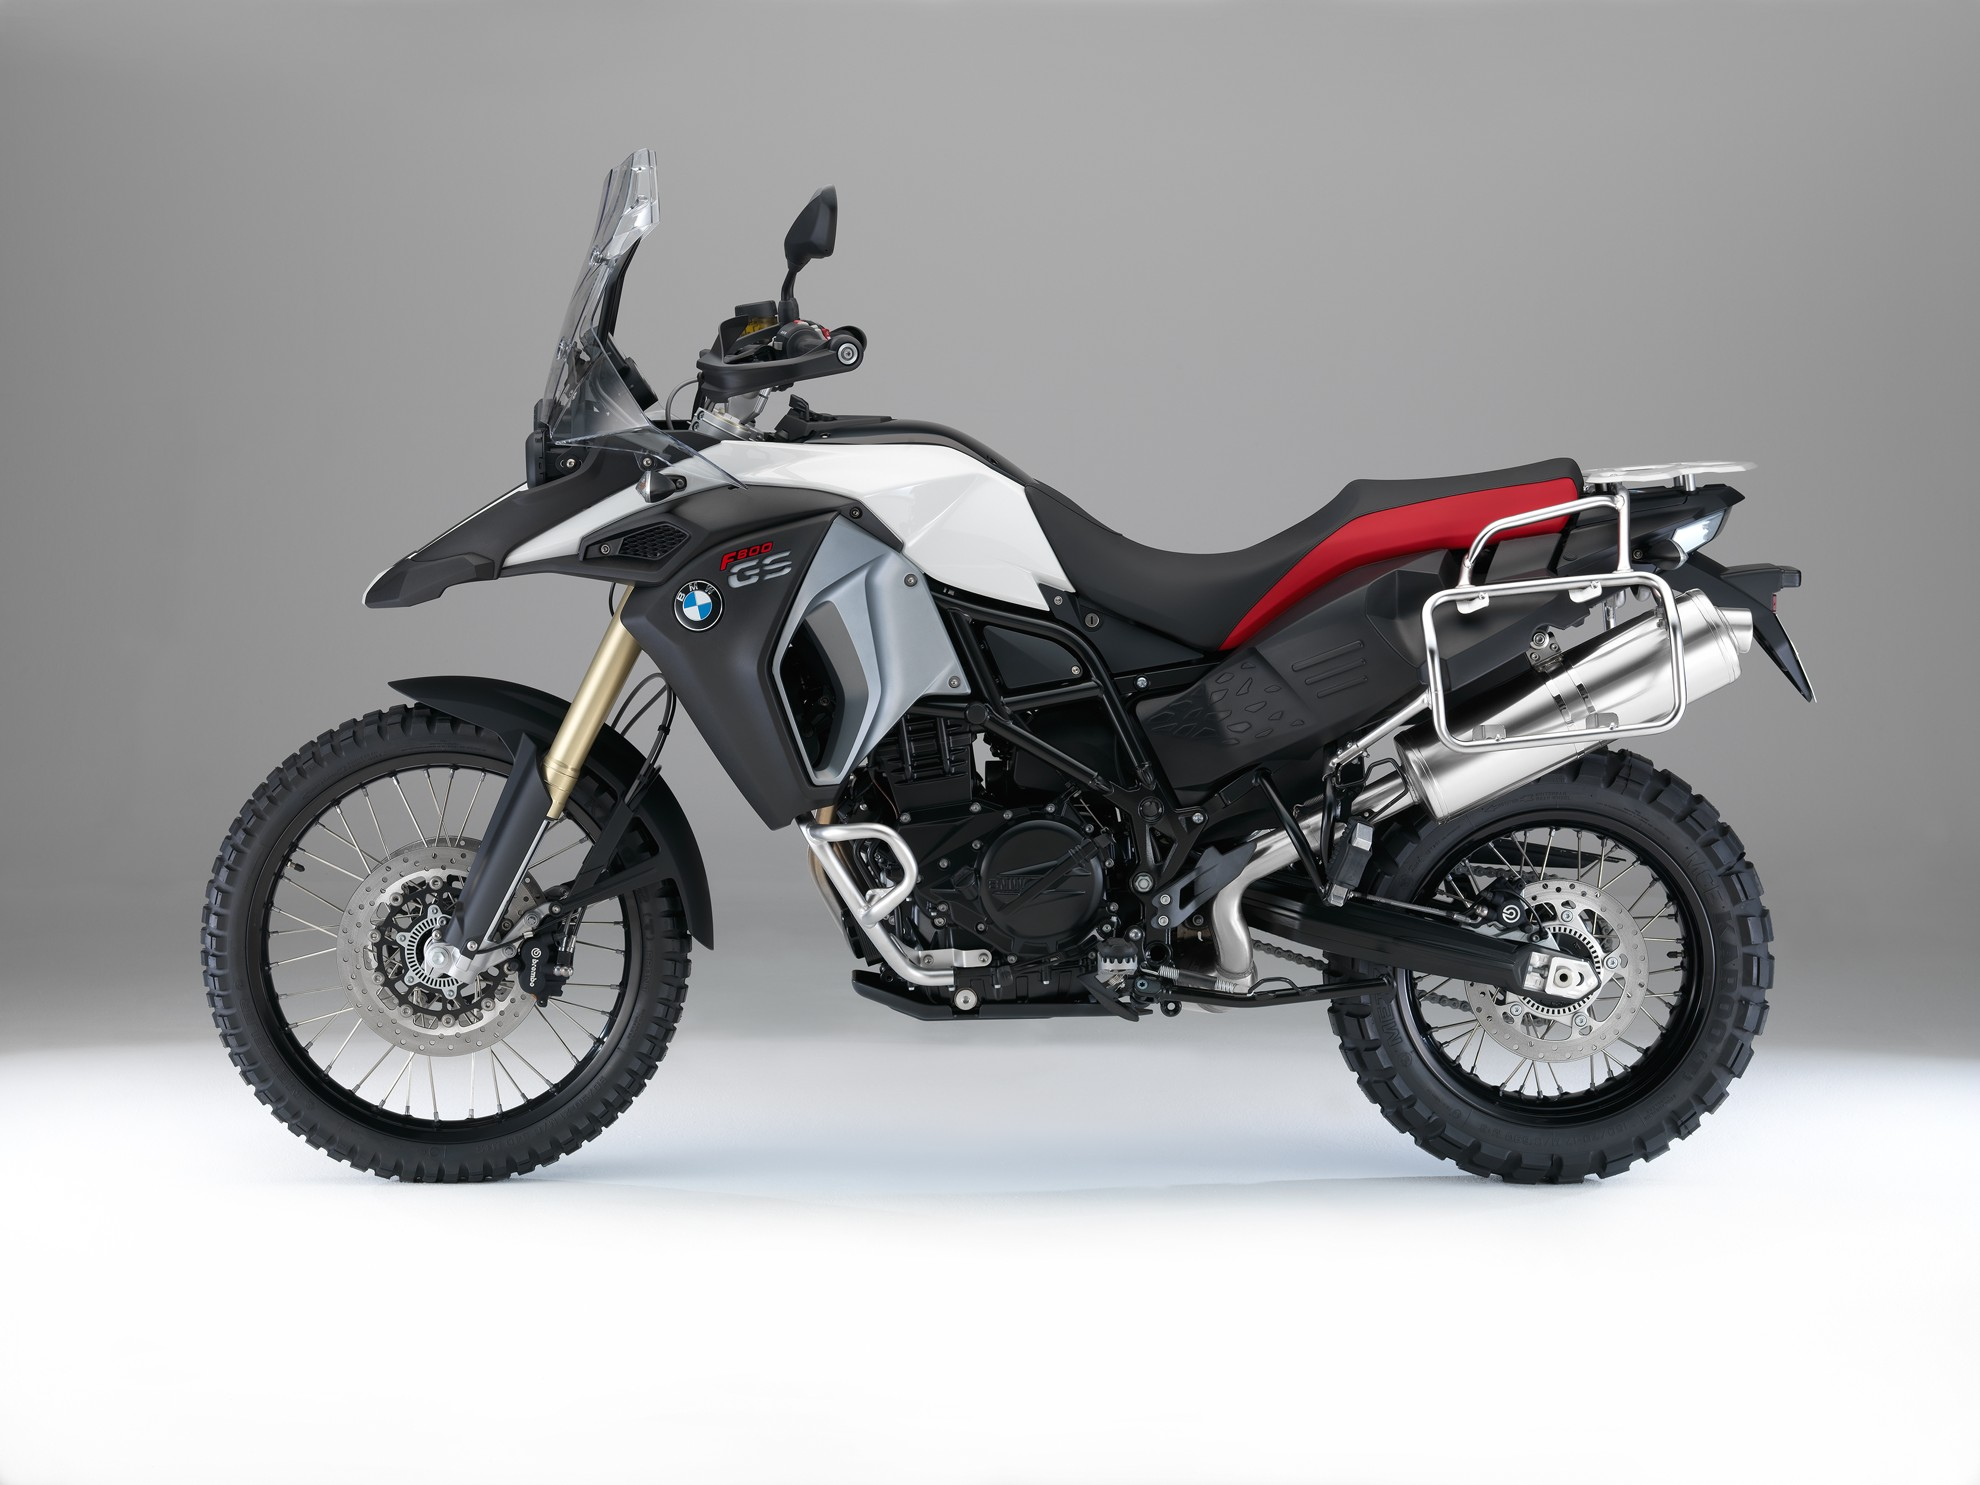 BMW_F_800_GS_Adventure_Motorcycles